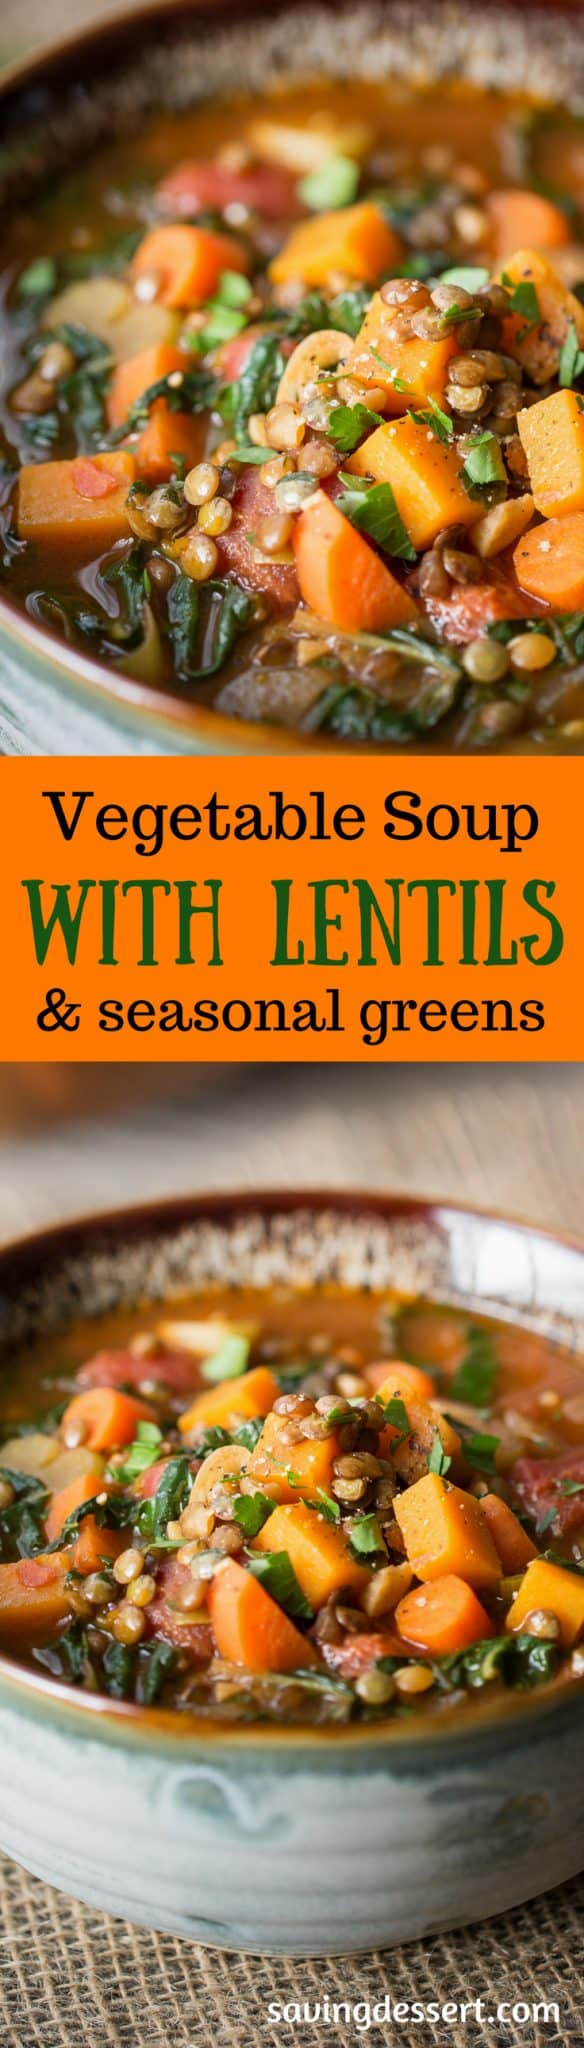 Vegetable Soup with Lentils & Seasonal Greens - A hearty rustic soup w/vegetables simmered in a rich flavorful broth with wilted seasonal greens & lentils www.savingdessert.com